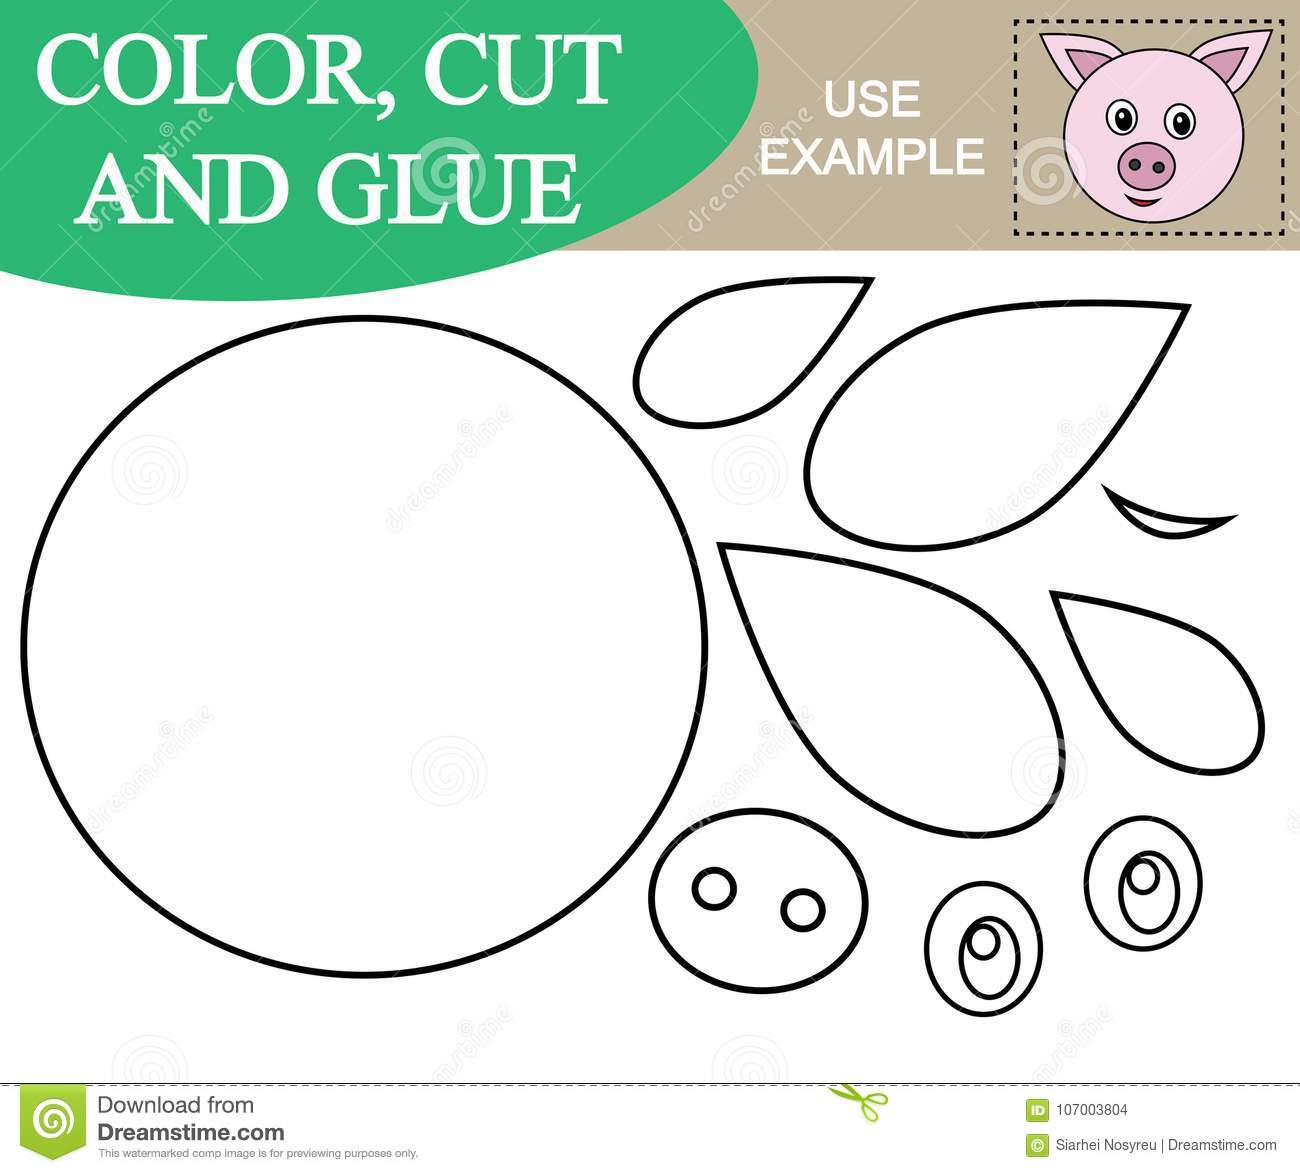 Paint Cut And Paste The Image Of Face Of Pig Game For